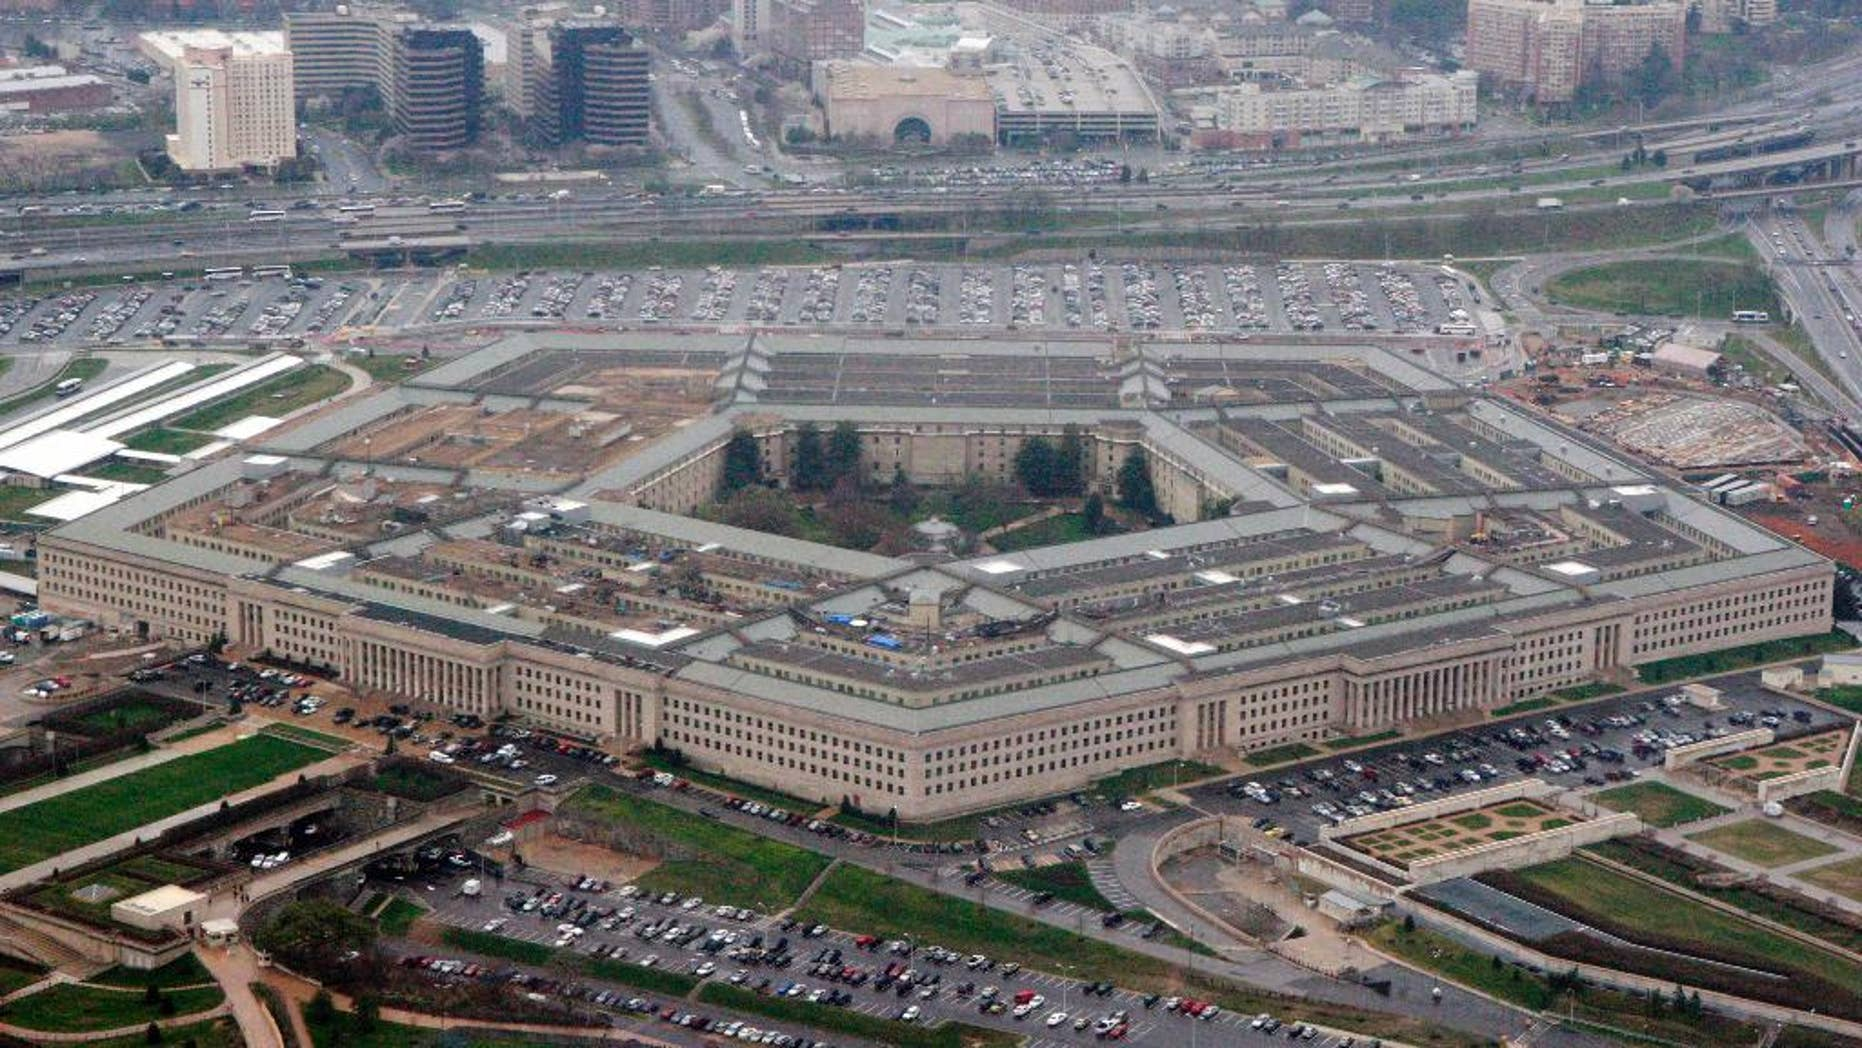 Packages Laced With Ricin Sent To The Pentagon